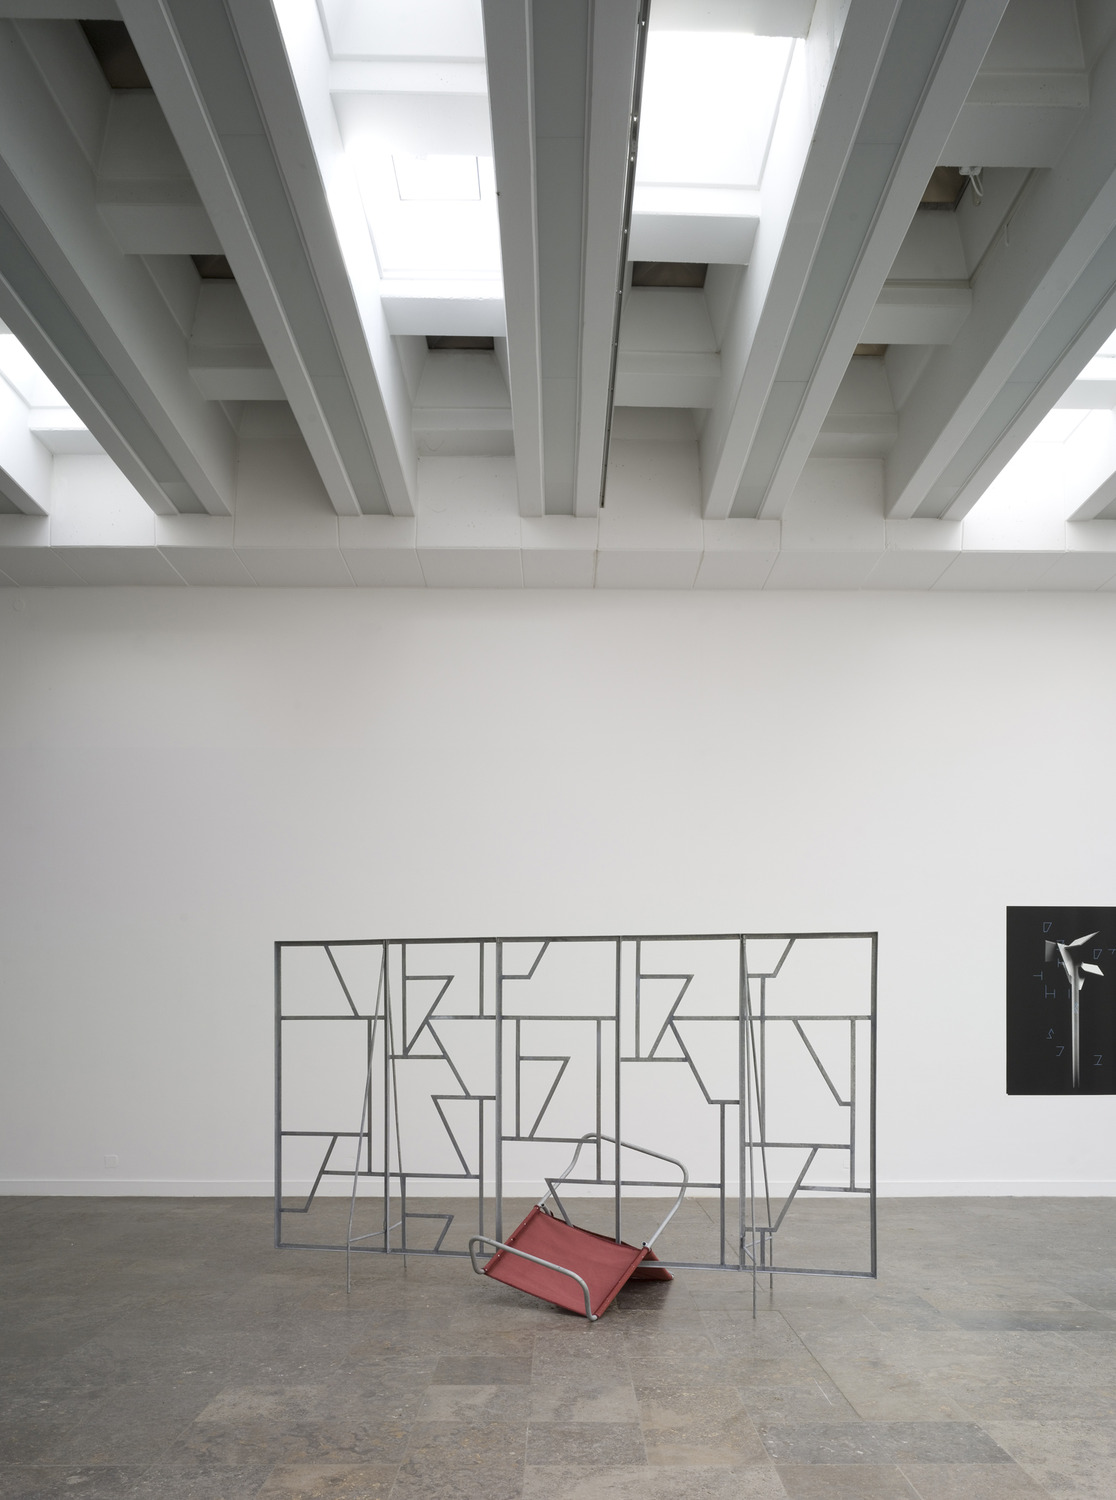 Installation view, 'This Place is Close and Unfolded', Westfälischer Kunstverein, Münster, 2008